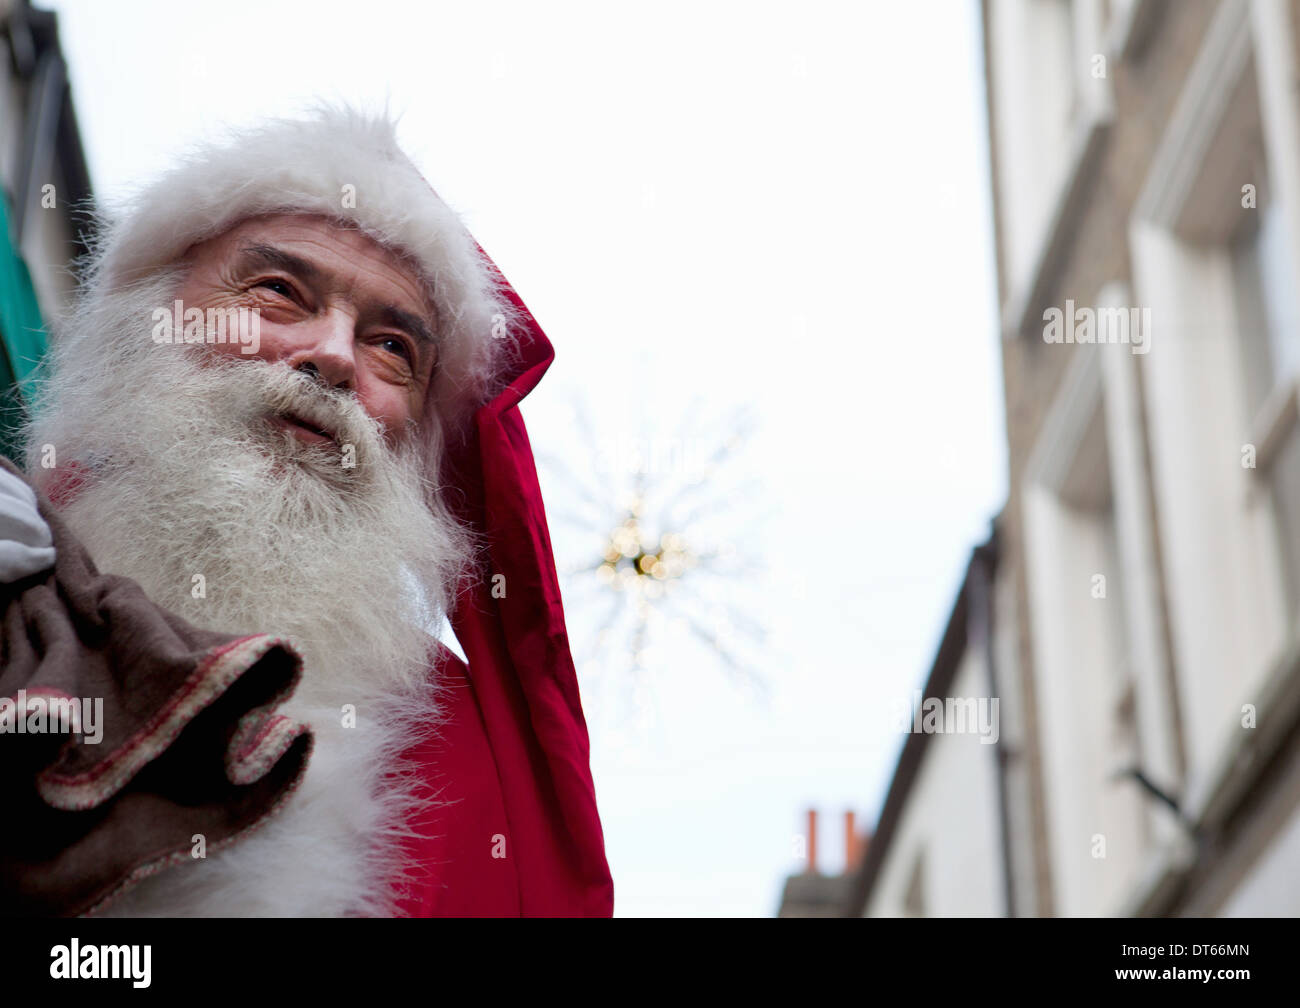 Santa Claus in the street - Stock Image